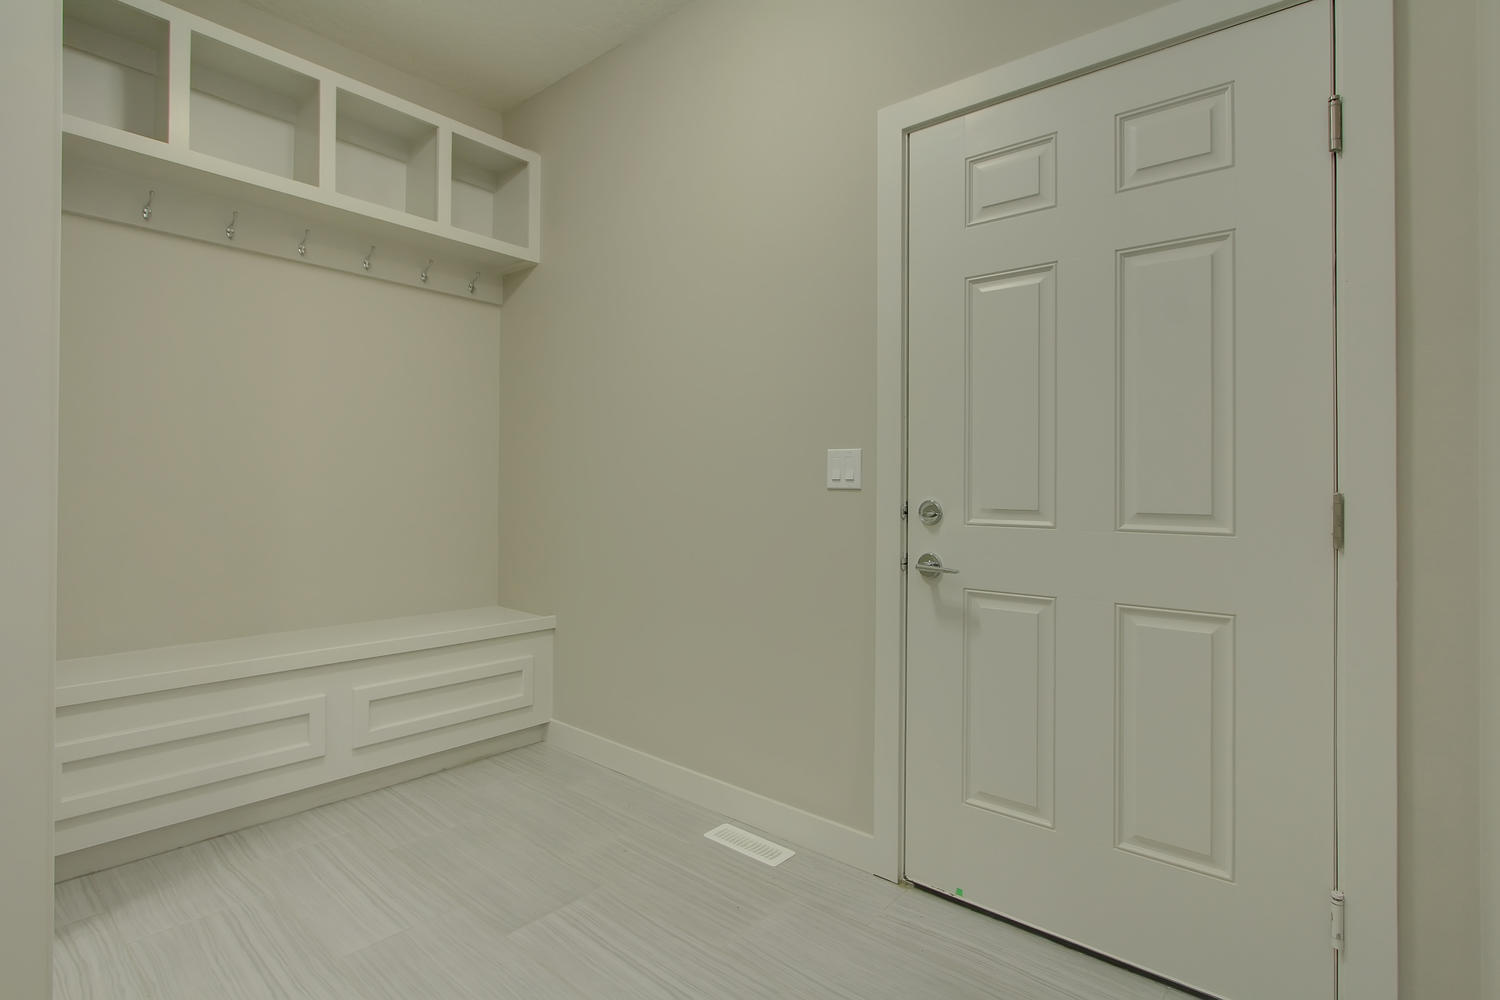 6606 53 Ave Beaumont AB T4X-large-007-84-Mudroom-1500x1000-72dpi.jpg